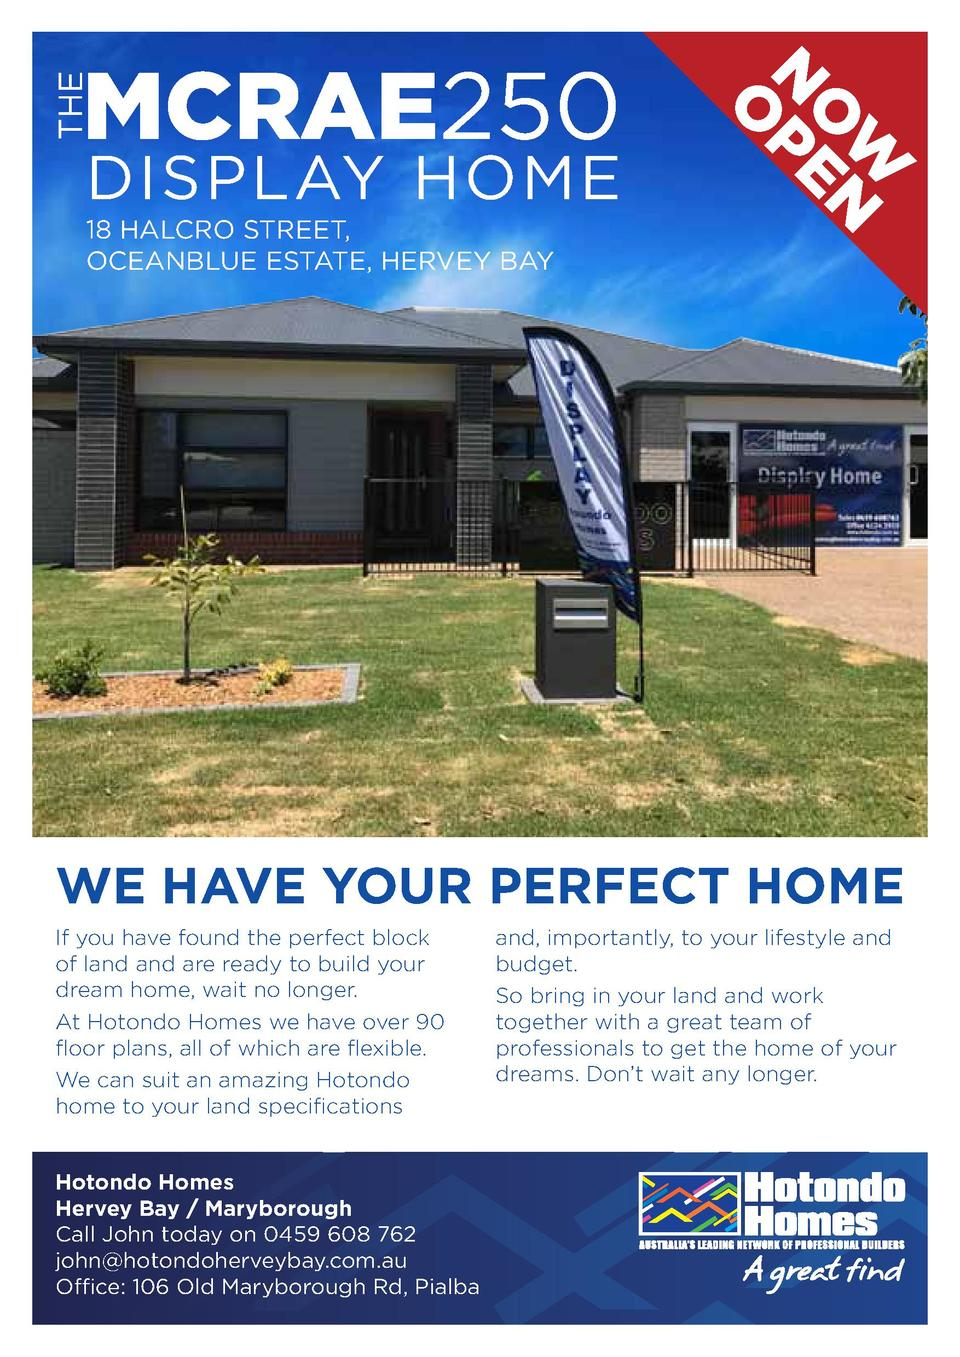 THE  DISPLAY HOME 18 HALCRO STREET, OCEANBLUE ESTATE, HERVEY BAY  W O N N PE O  MCRAE250  WE HAVE YOUR PERFECT HOME If you...